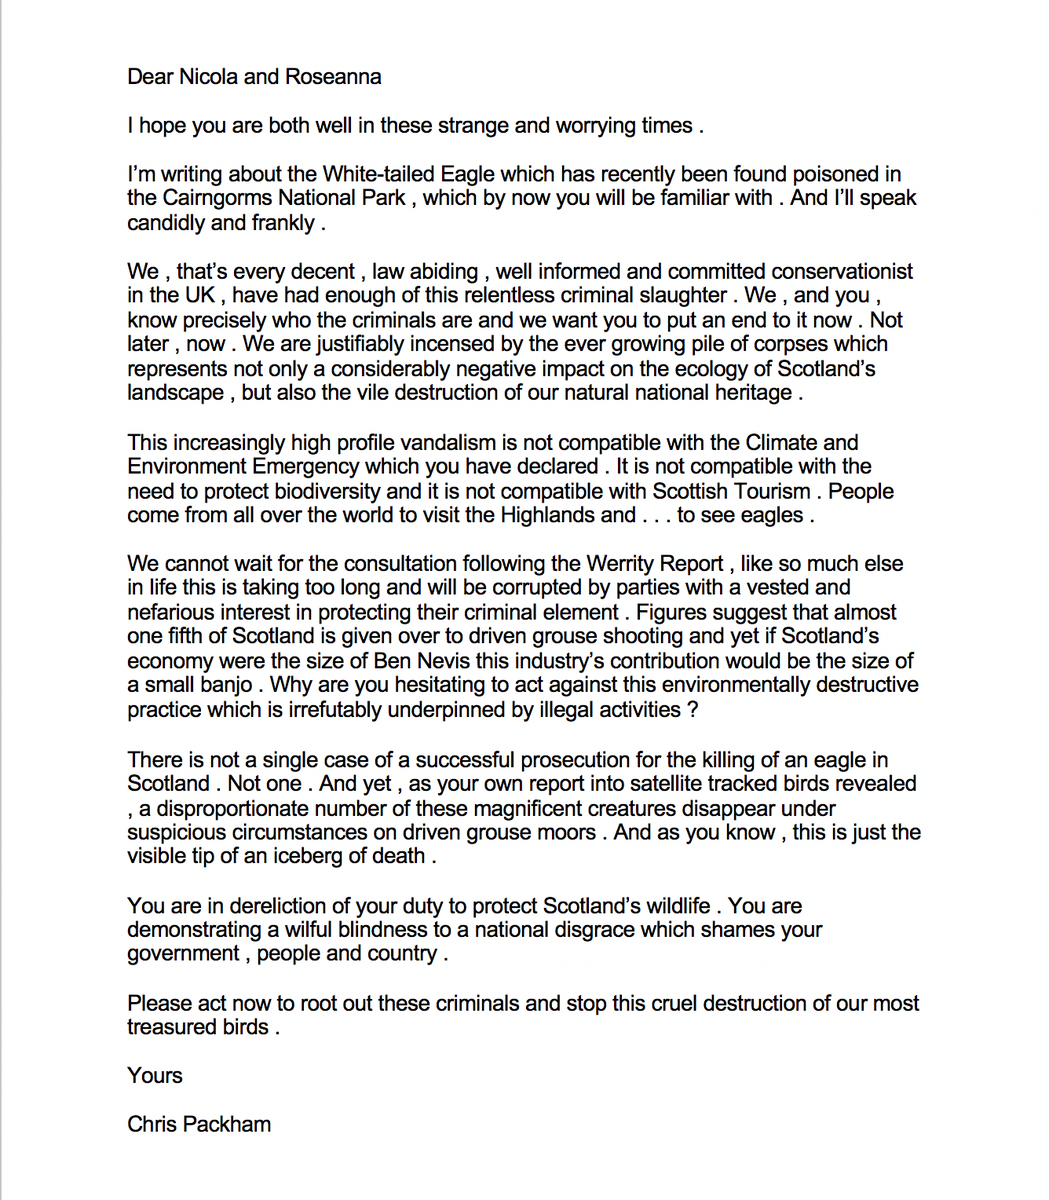 Today I sent this letter to @NicolaSturgeon and @strathearnrose in @scotgov . I've had enough of the criminal slaughter of our raptors on driven grouse moors . Please send polite emails yourself to firstminister@gov.scot CabSecECCLR@gov.scot PLEASE RT https://t.co/M6J8BQYzI2